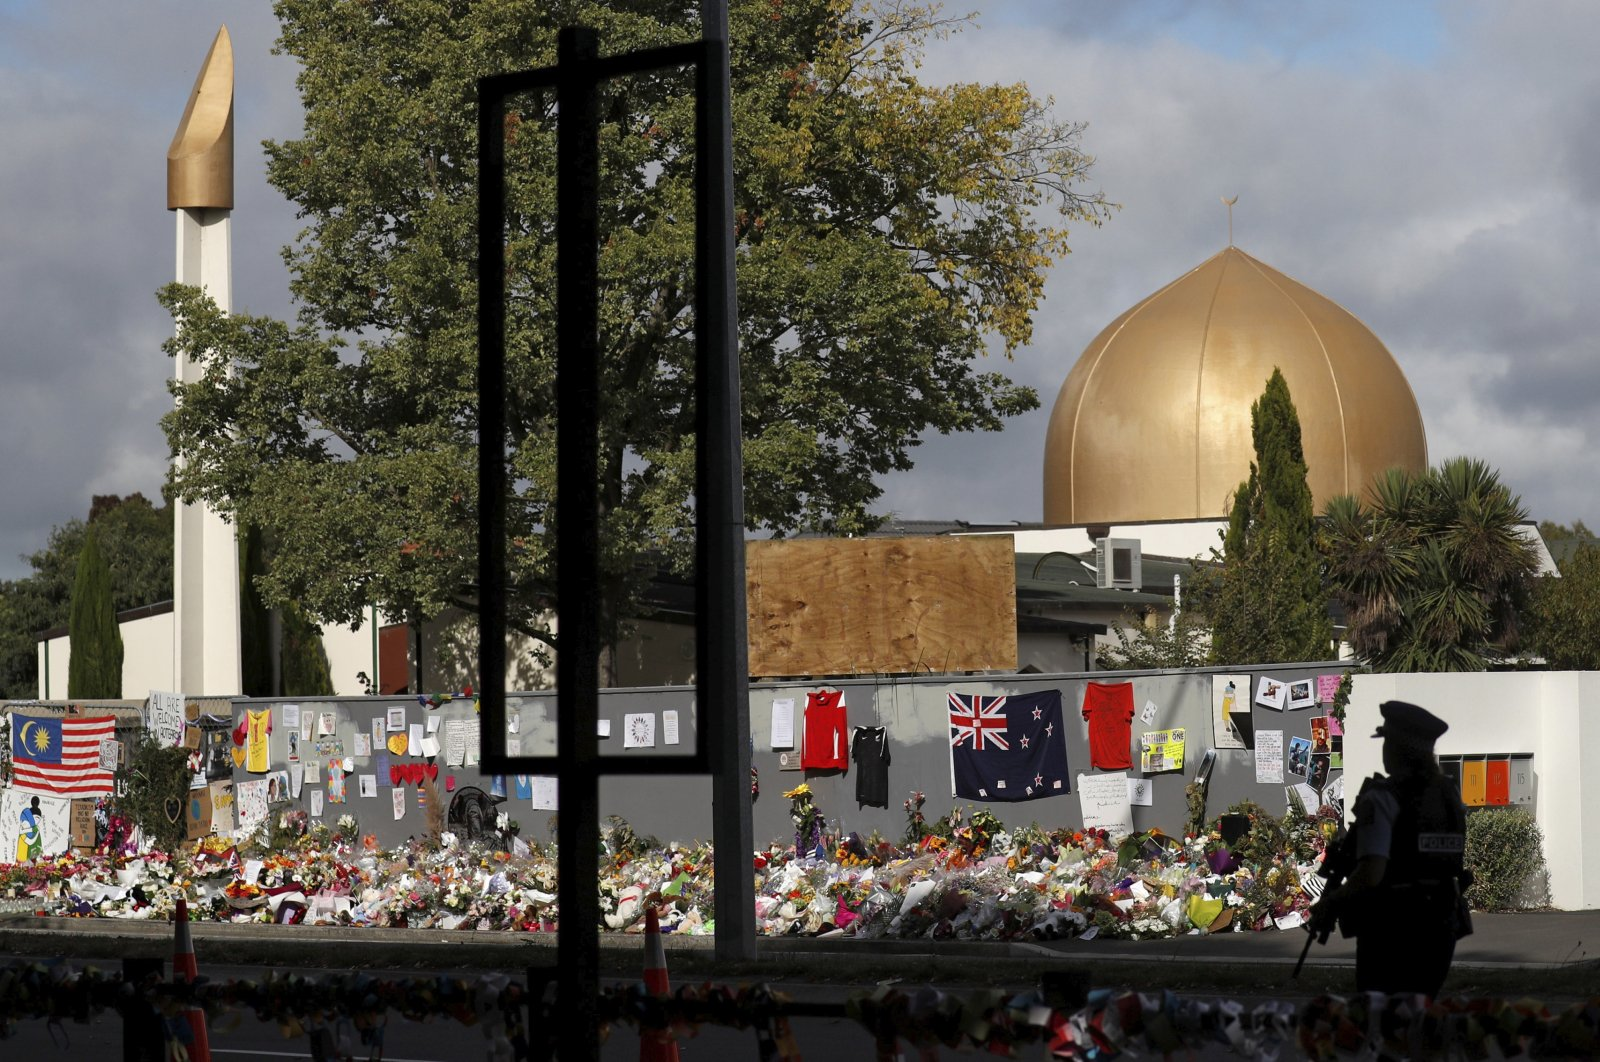 A police officer stands guard outside Al Noor mosque in Christchurch, New Zealand, March 22, 2019. (Reuters Photo)